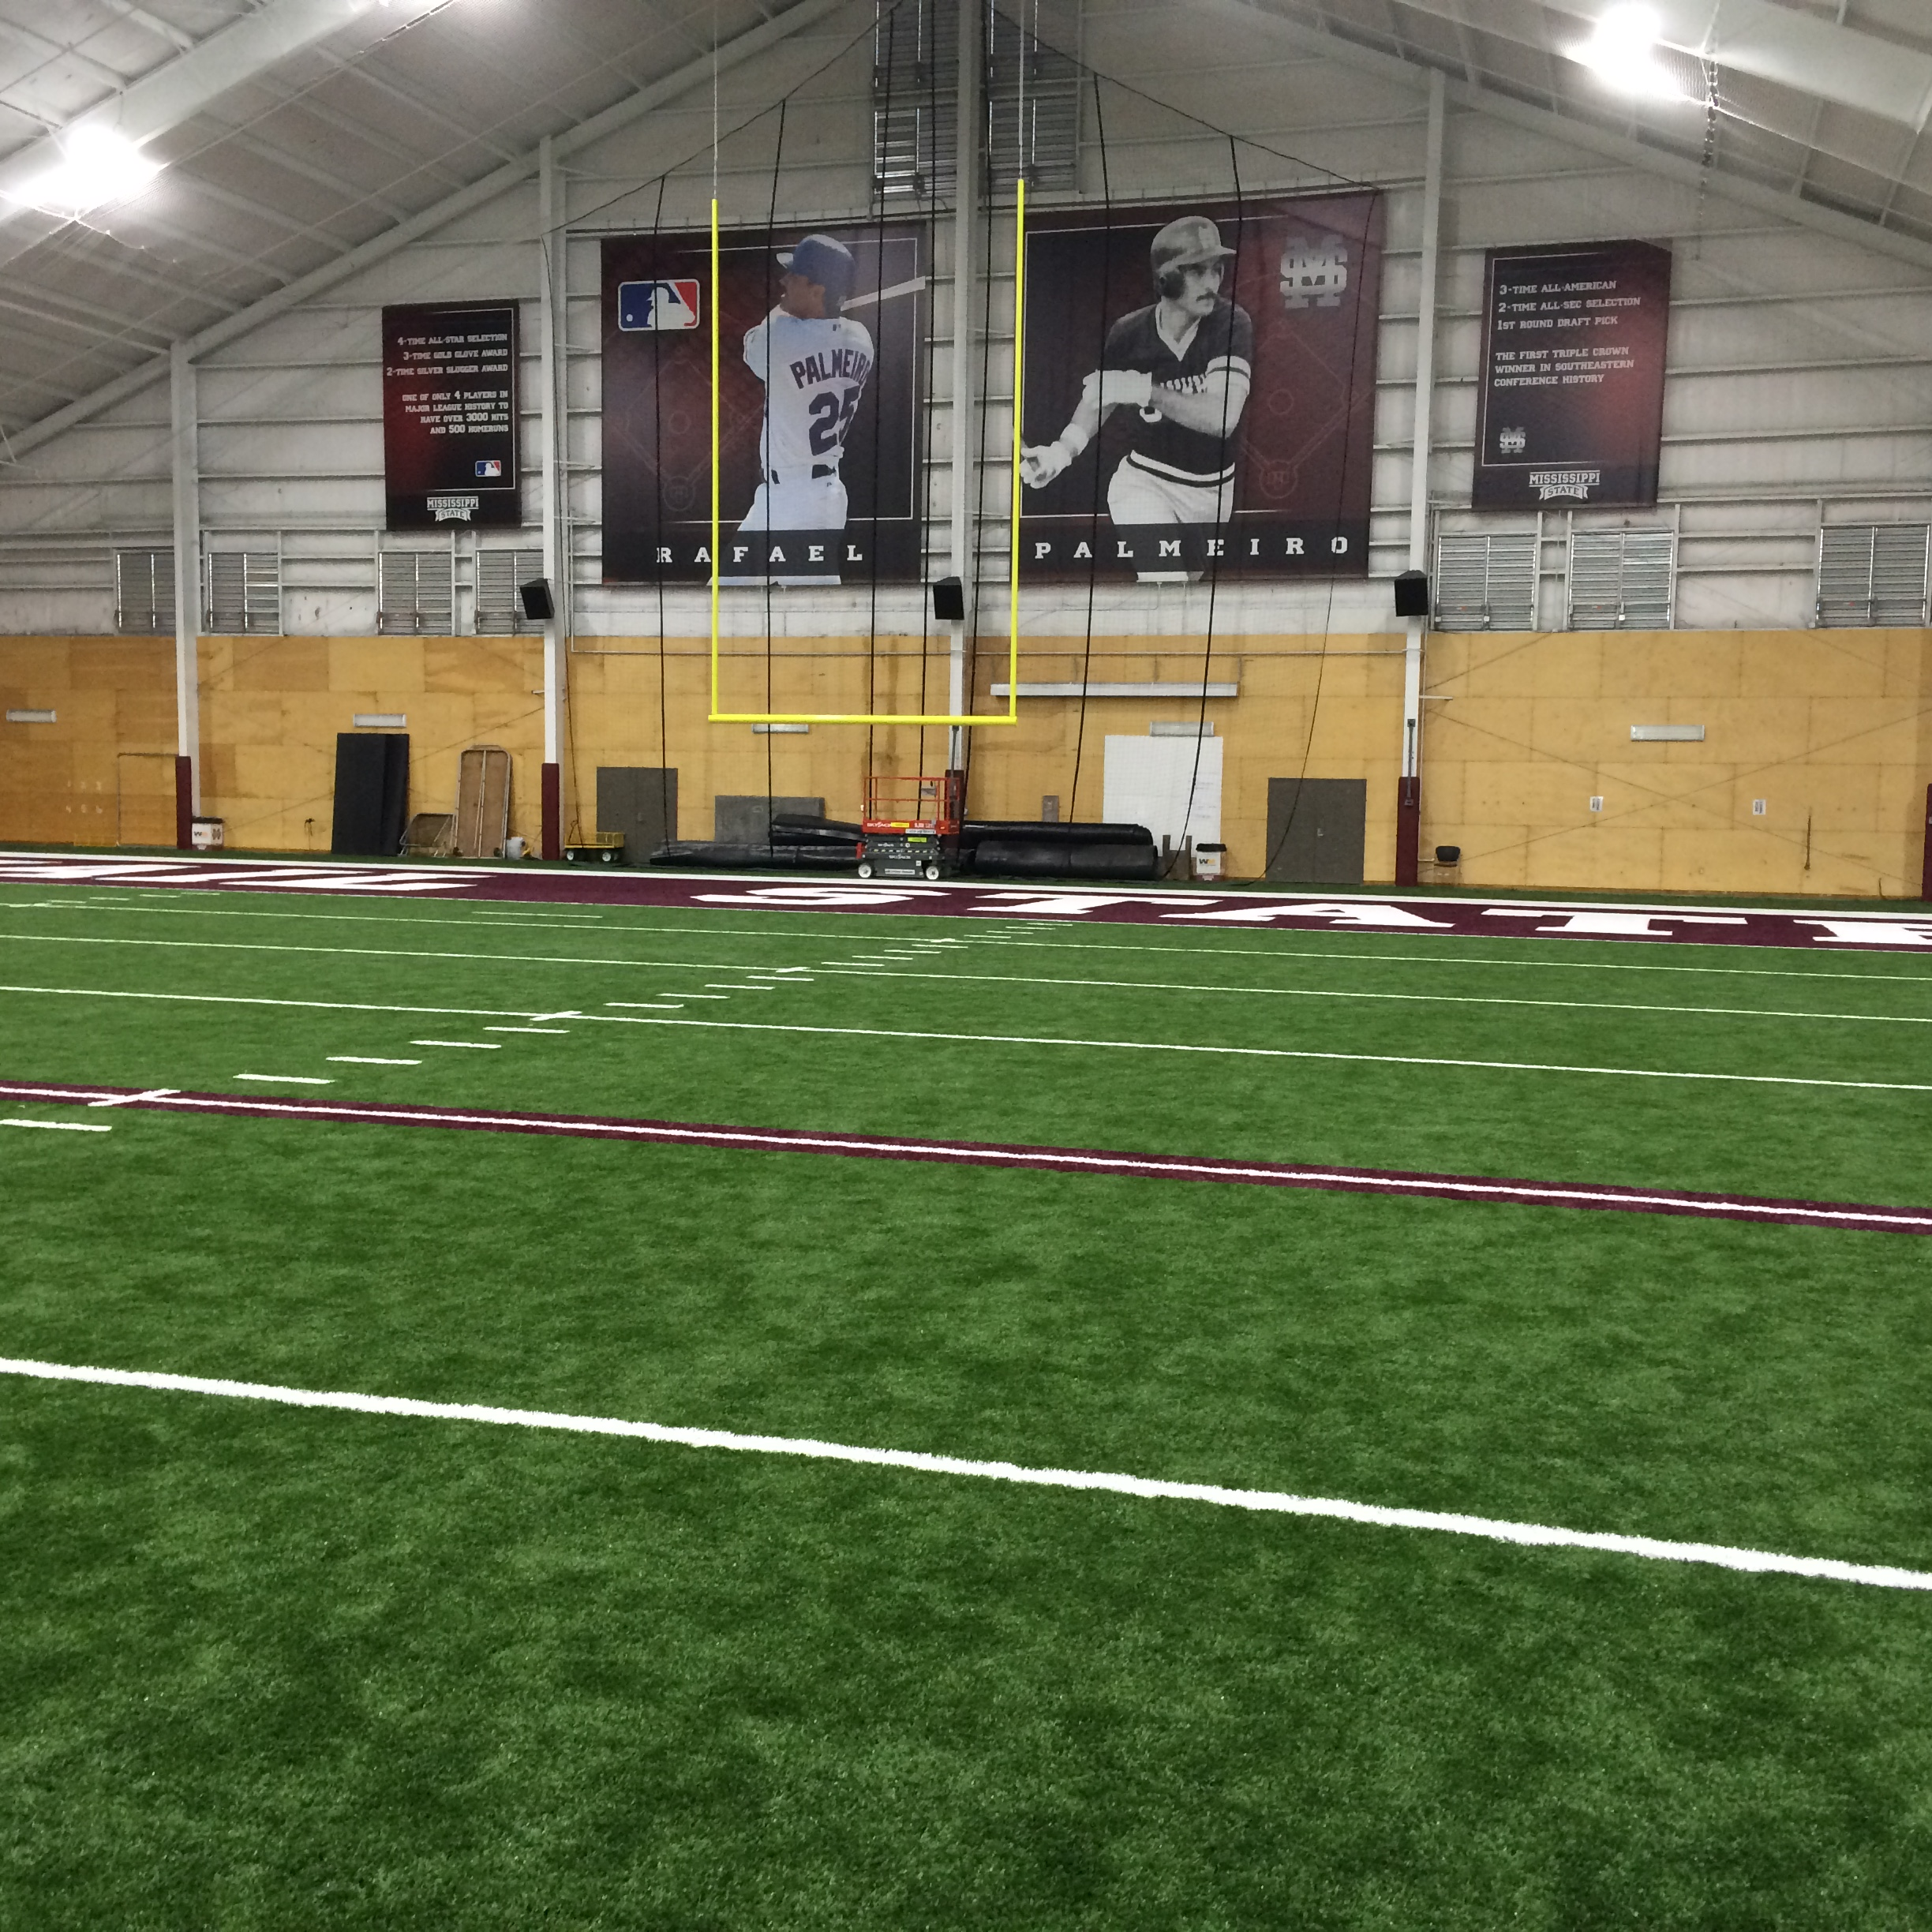 Mississippi State Indoor - Palmiero Center Image 1